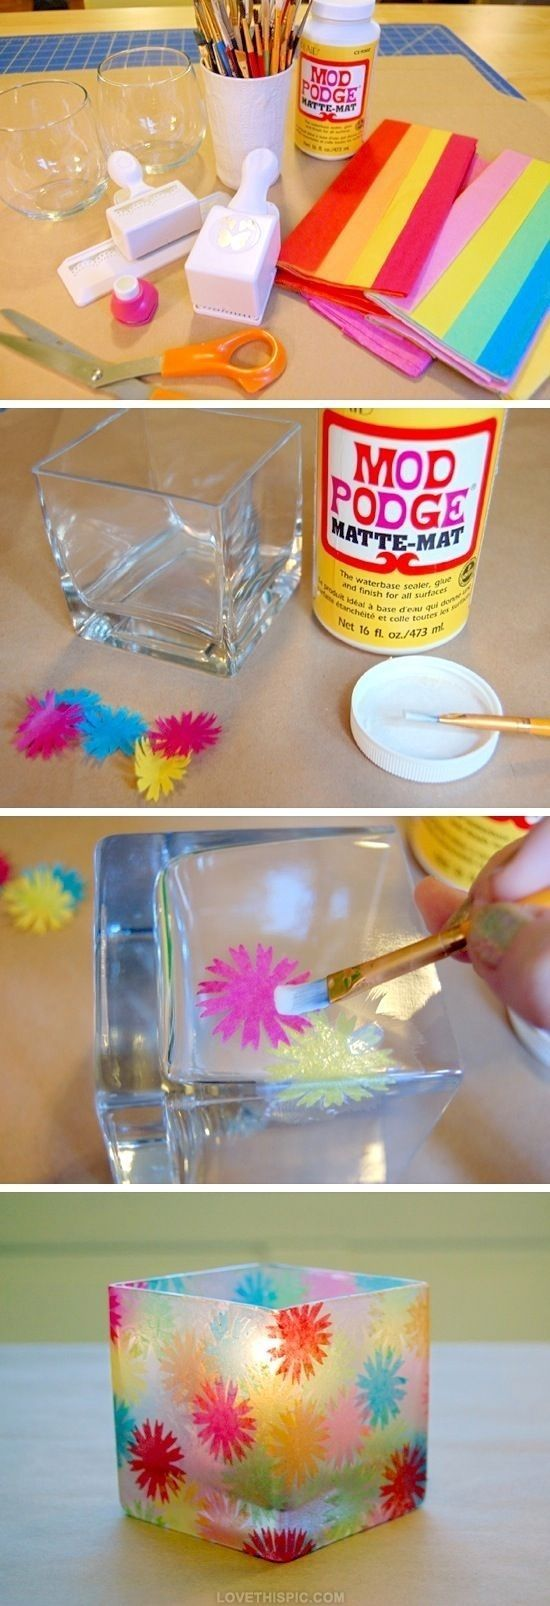 22 Amazing DIY Candles and Candle Holders Ideas I'm not into a bunch of crafts but this is fun looking! I would bet it would be great to make a as group. Like in Sunday school or home schooling or just with friends over..... or to make at a sleep over!